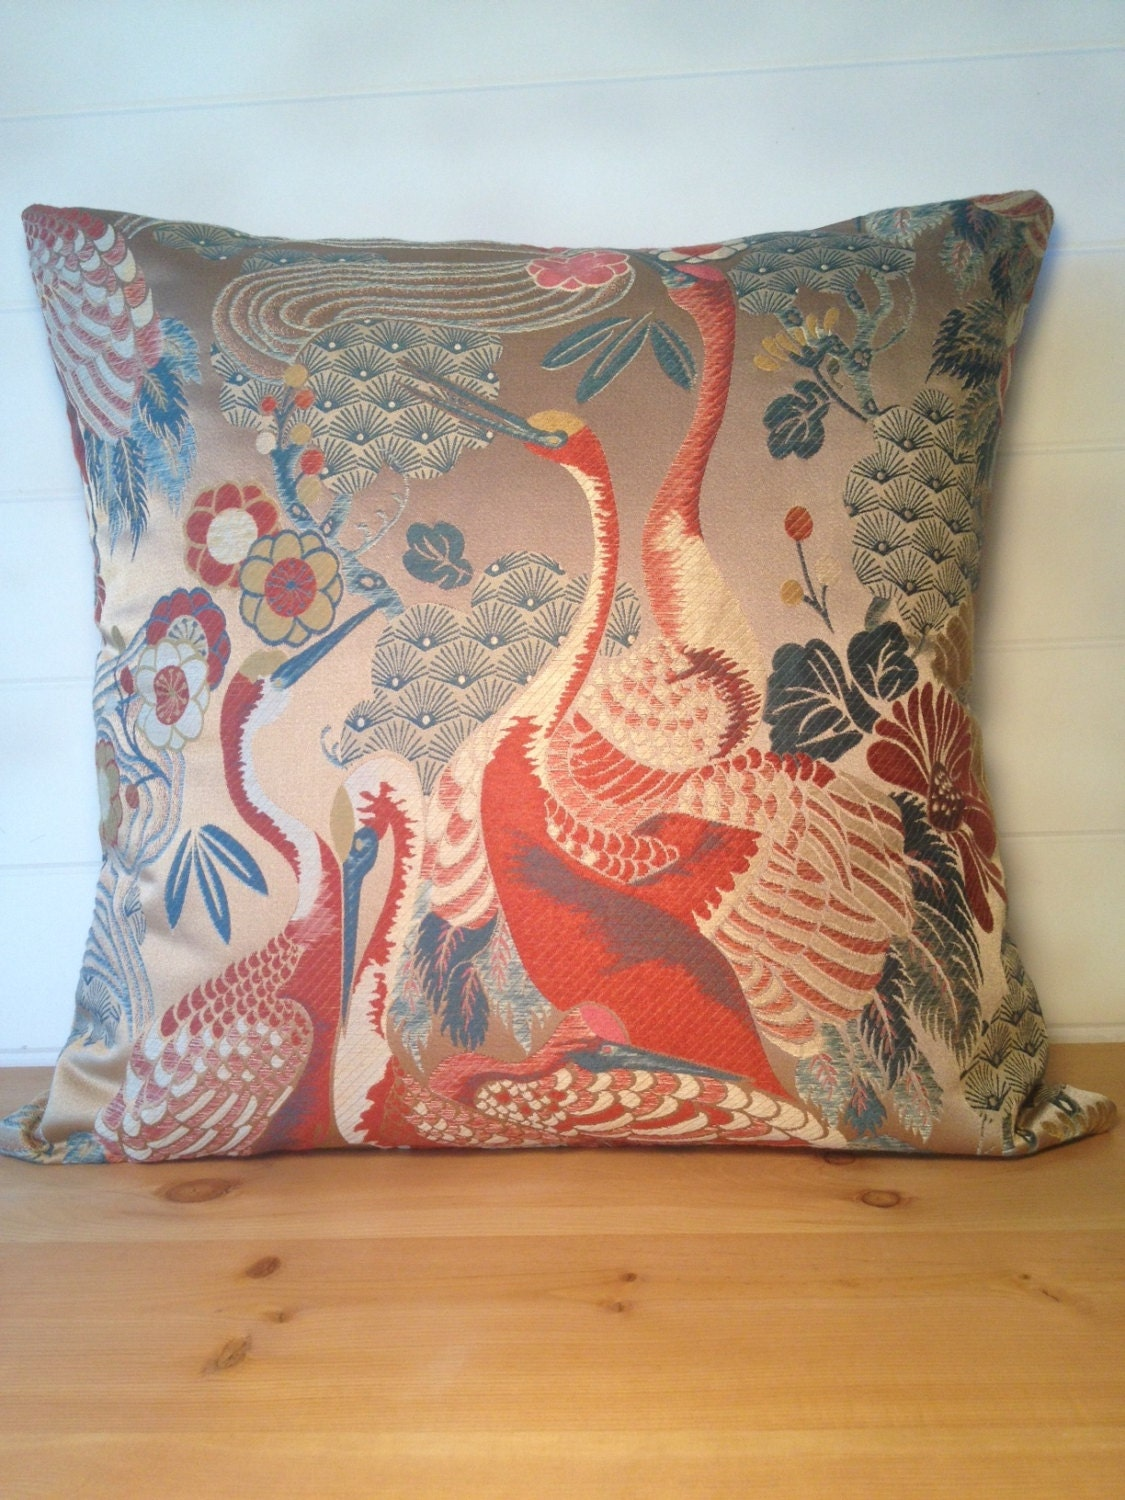 Luxury Throw Pillow Covers : High End Decorative Throw Pillow Cover Designer Egrets Luxury